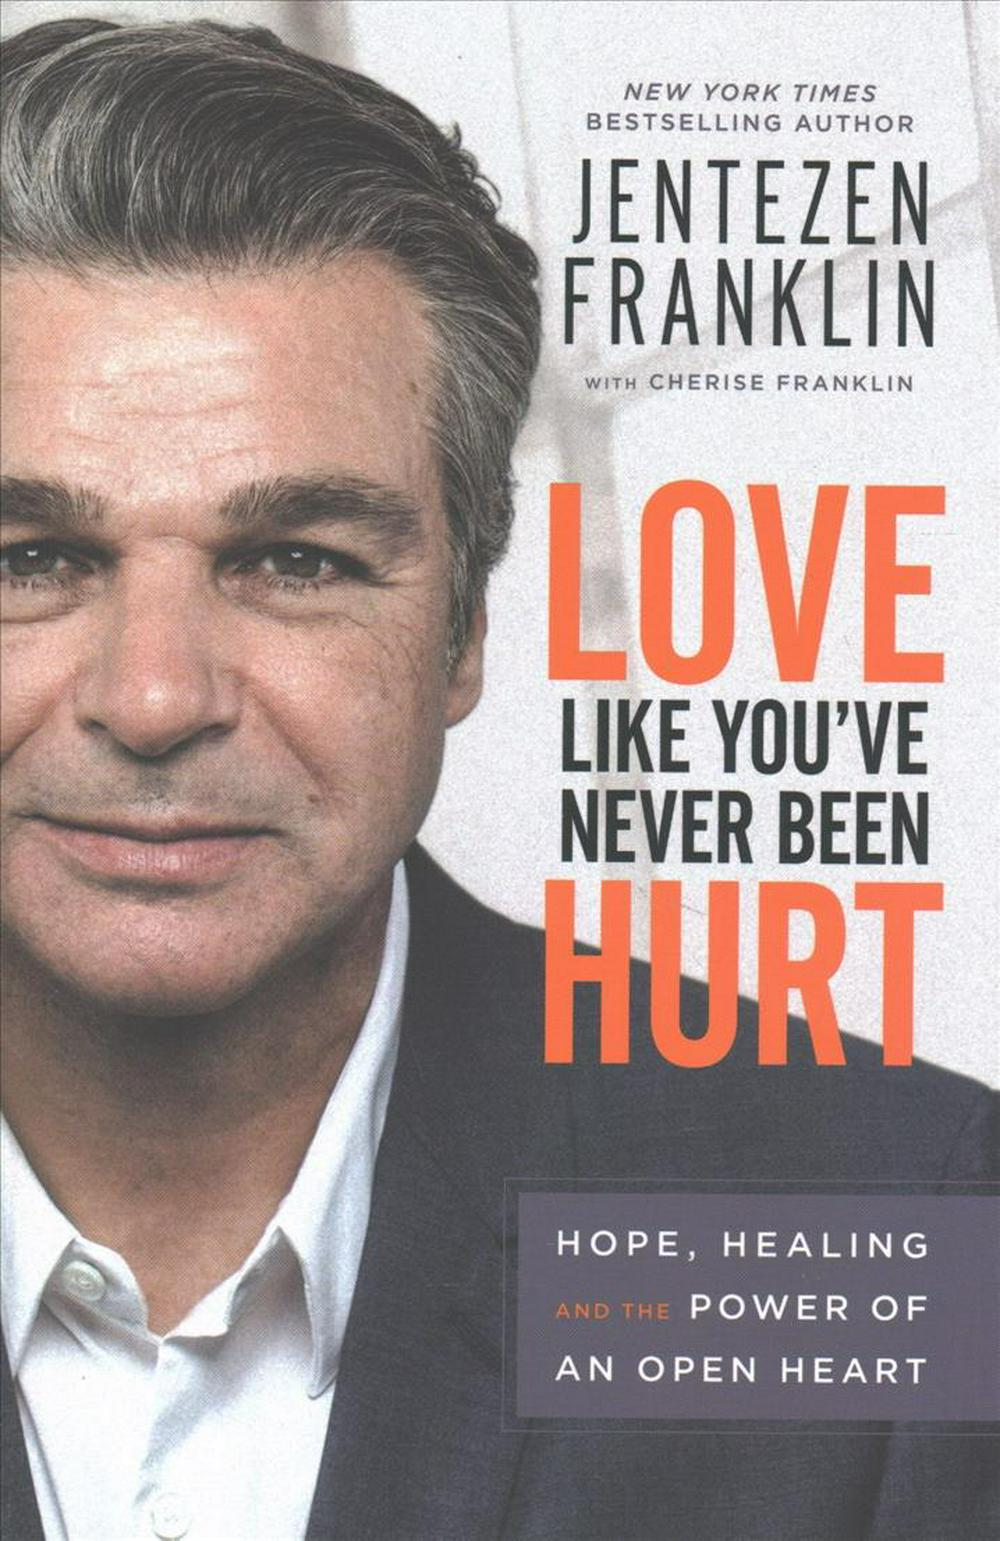 Love Like You've Never Been HurtHope, Healing and the Power of an Open Heart